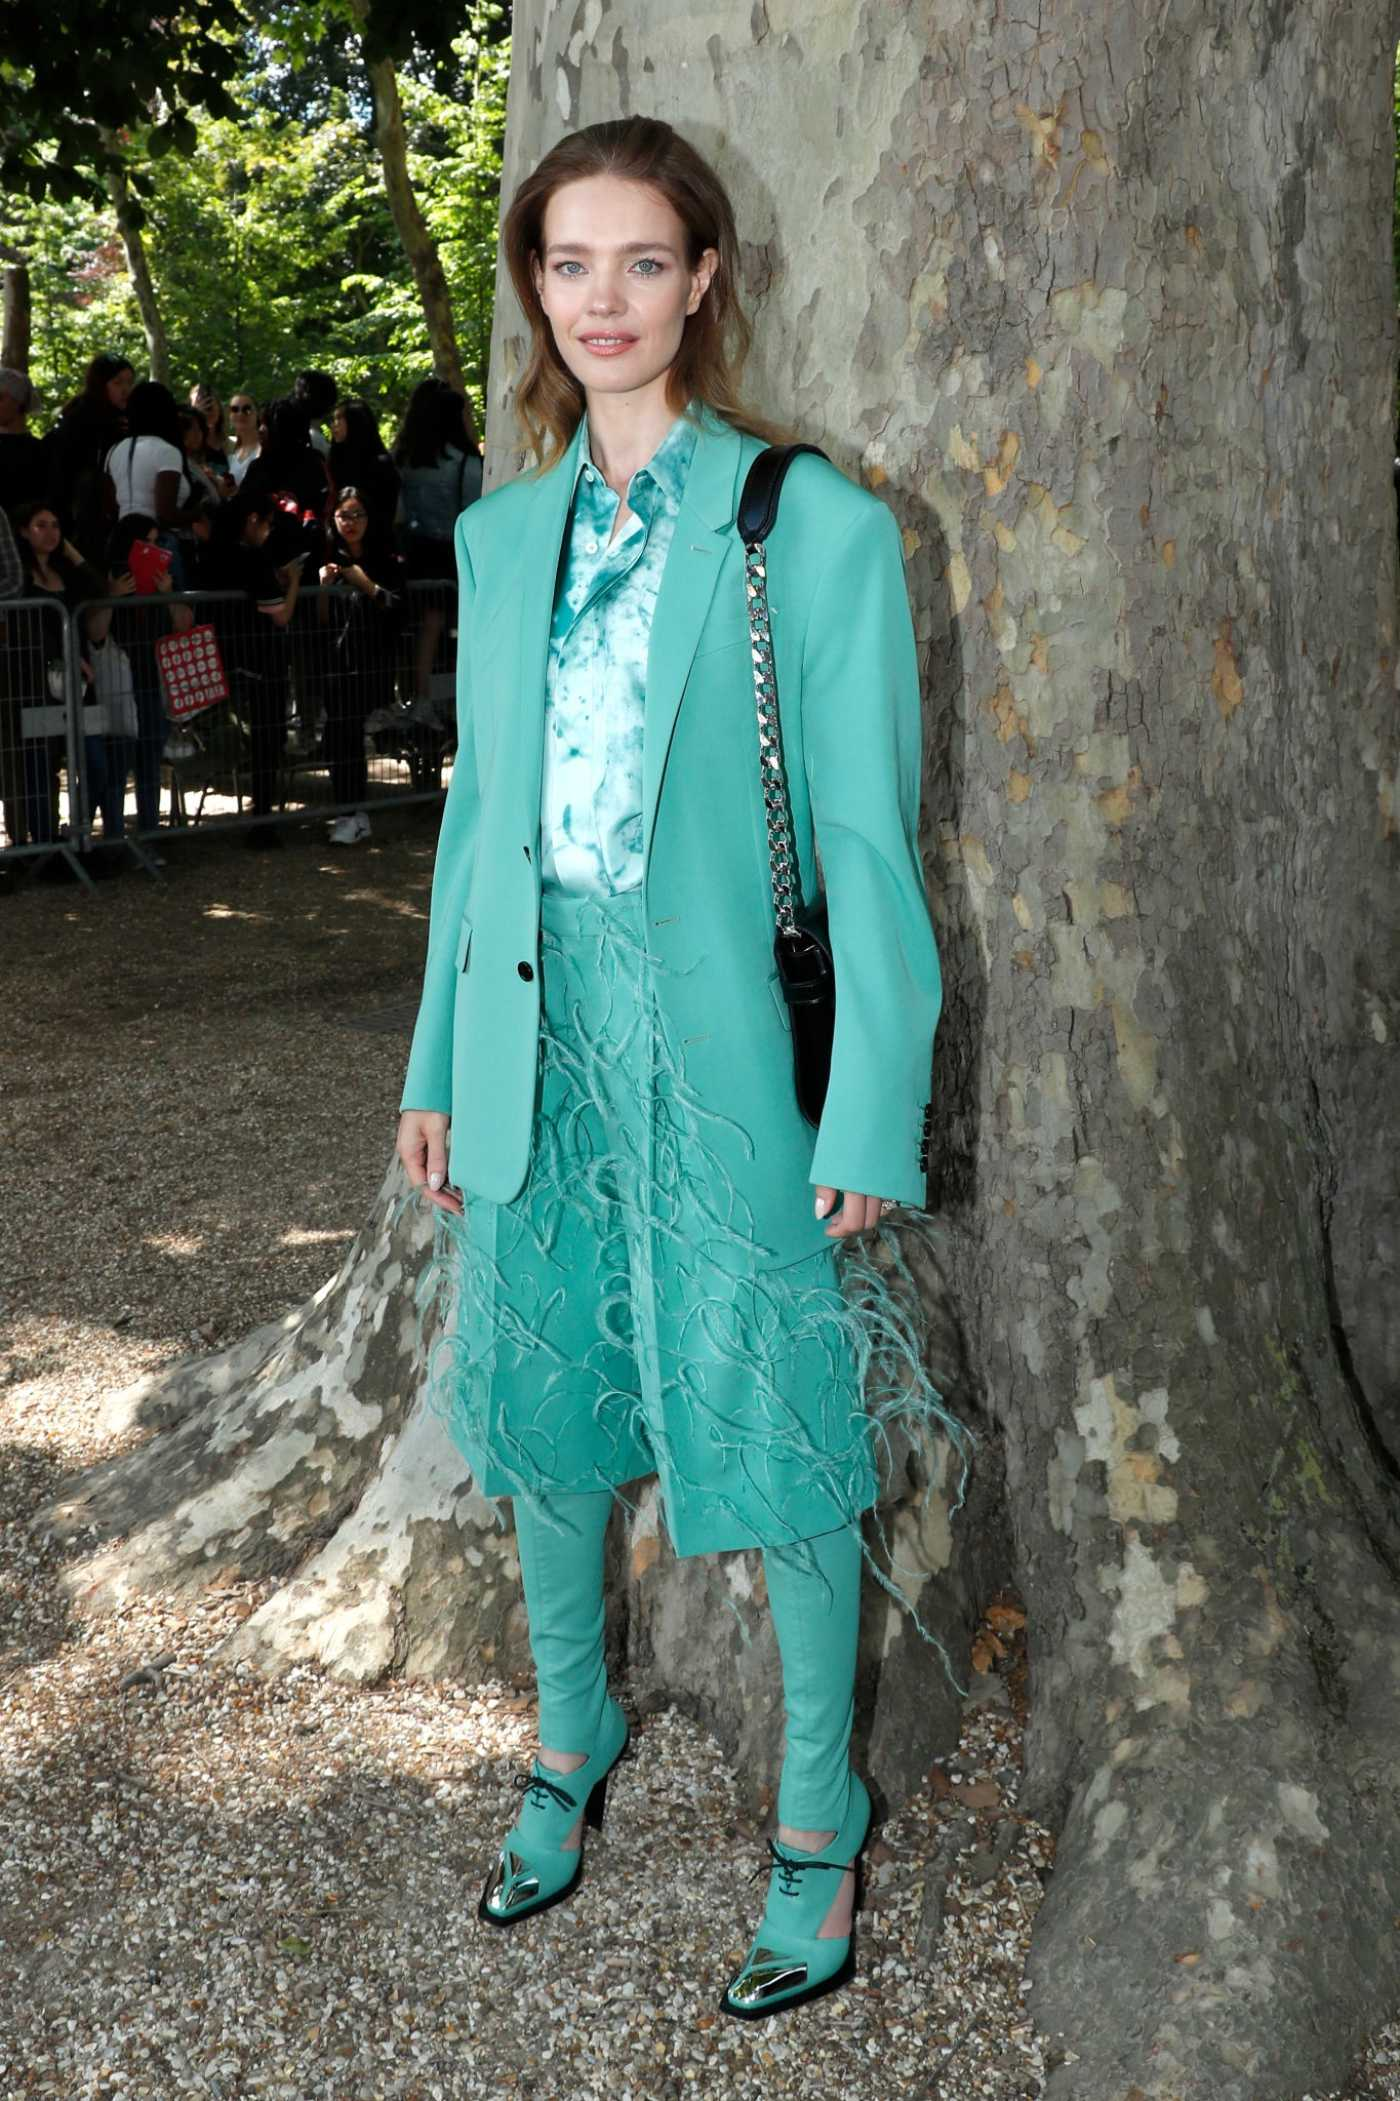 Natalia Vodianova Arrives at 2020 Berluti Menswear Spring Summer Show in Paris 06/21/2019